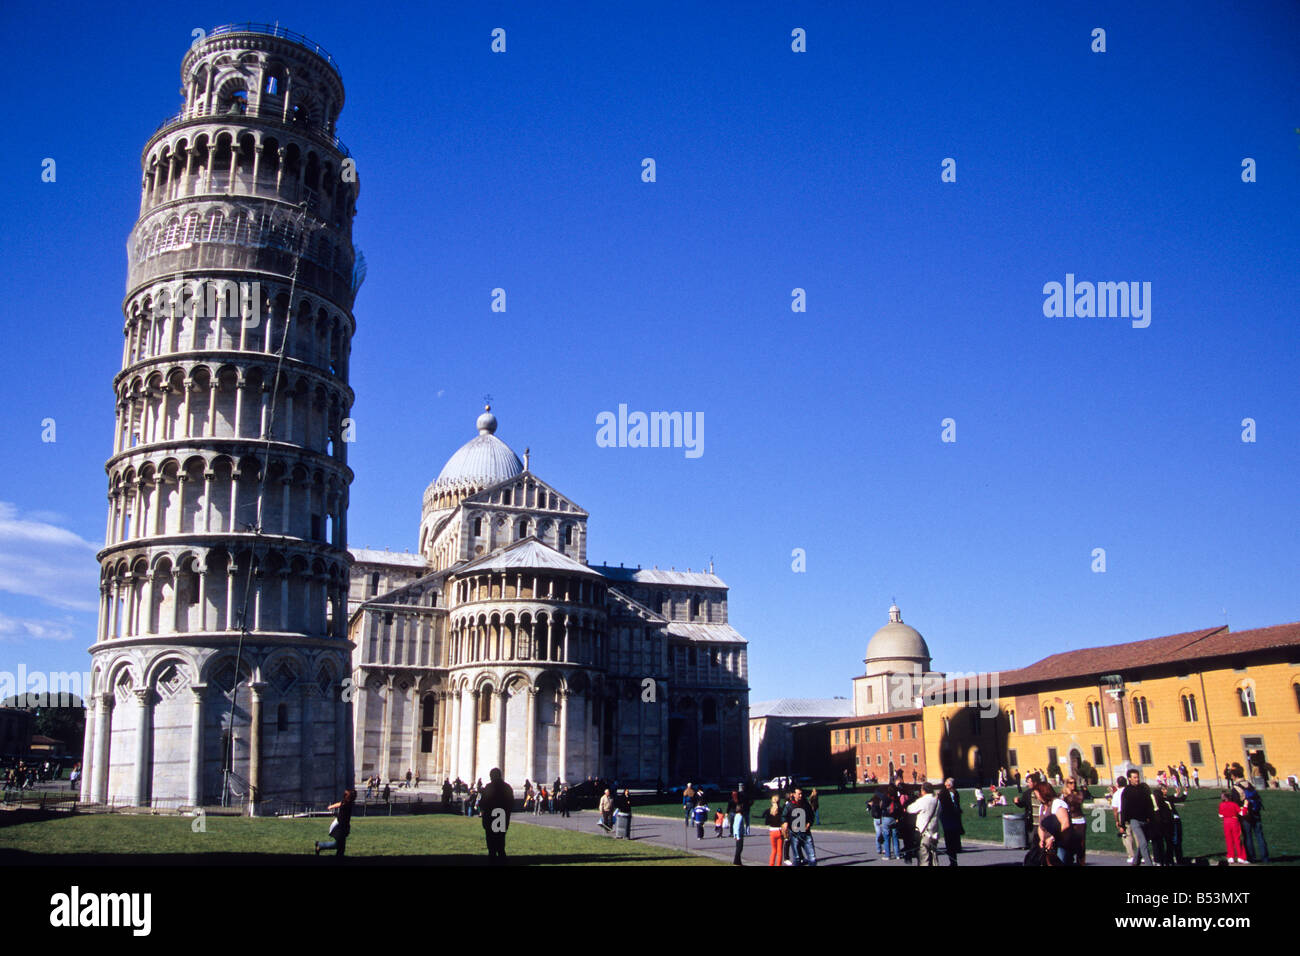 The Leaning Tower and the Cathedral, Piazza dei Miracoli, Pisa, Tuscany, Italy Stock Photo